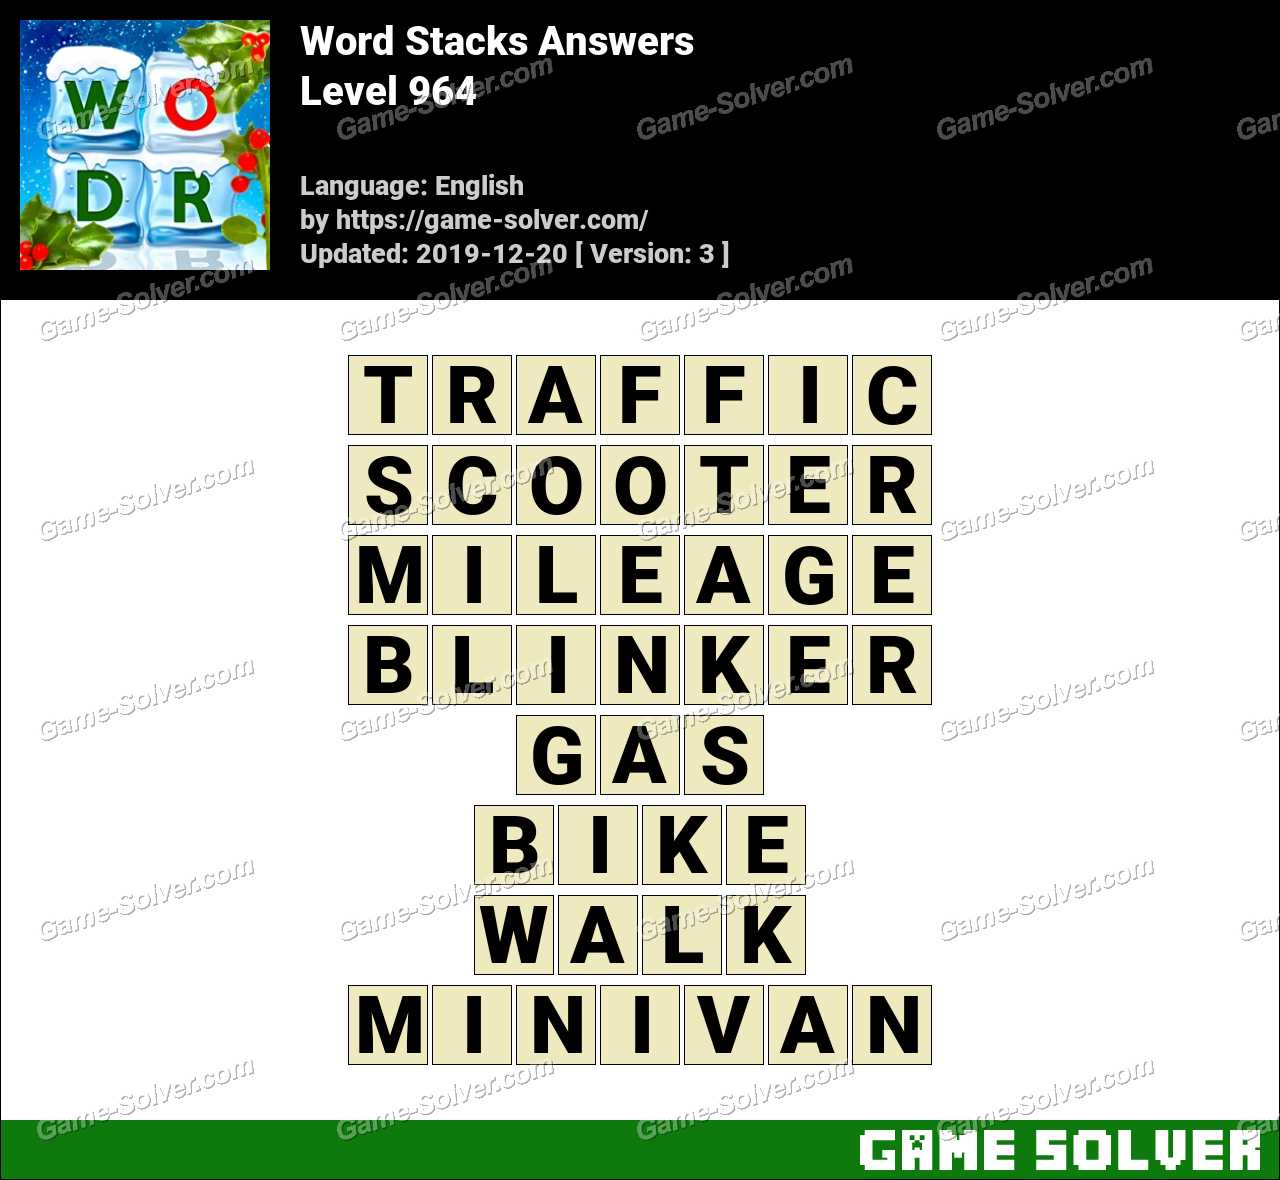 Word Stacks Level 964 Answers